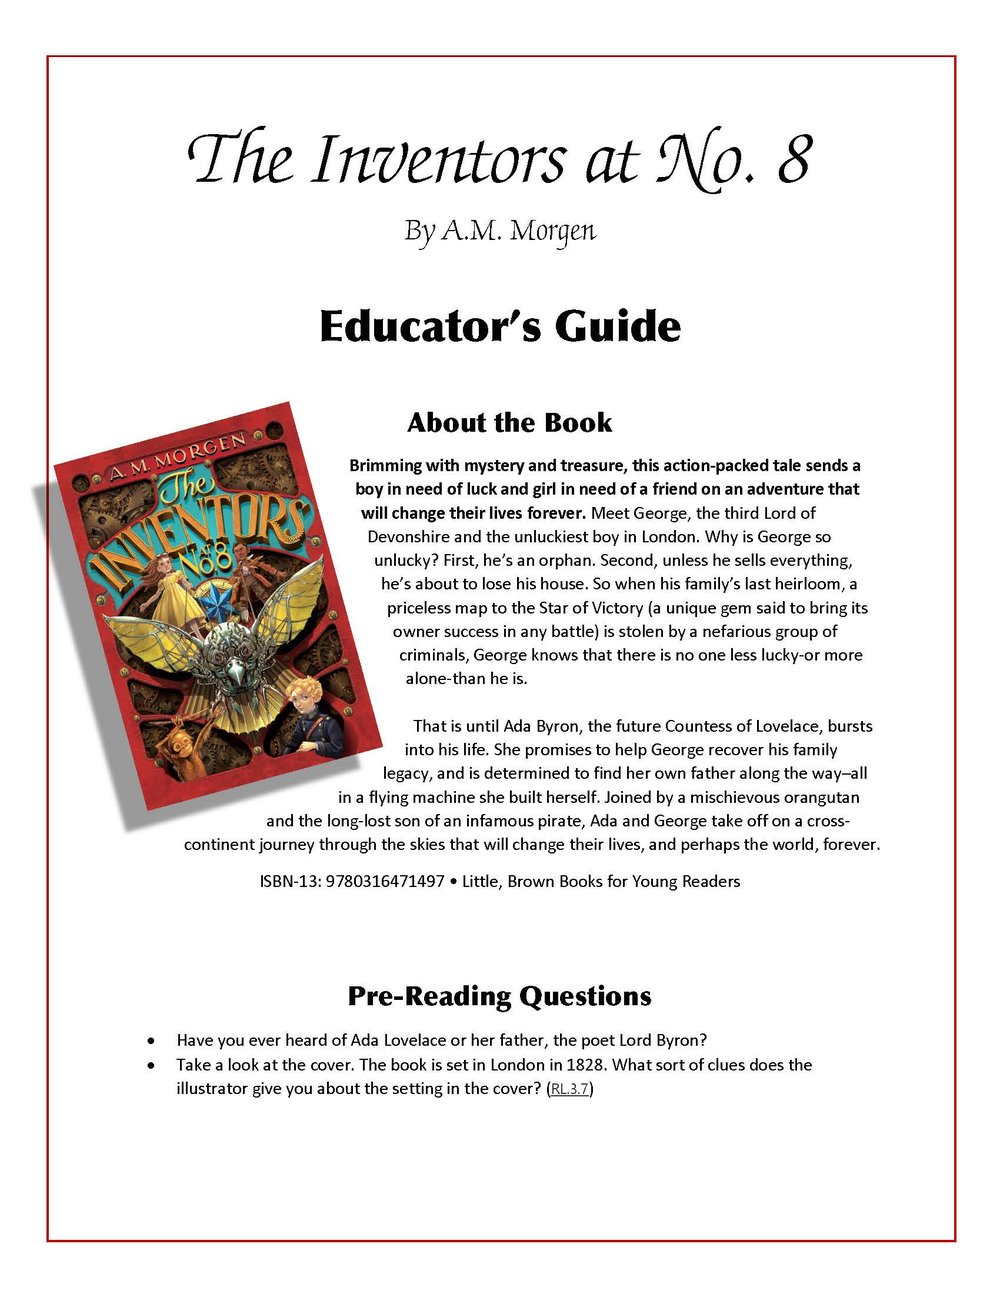 Inventors at No 8 Educator's Guide_Page_1.jpg